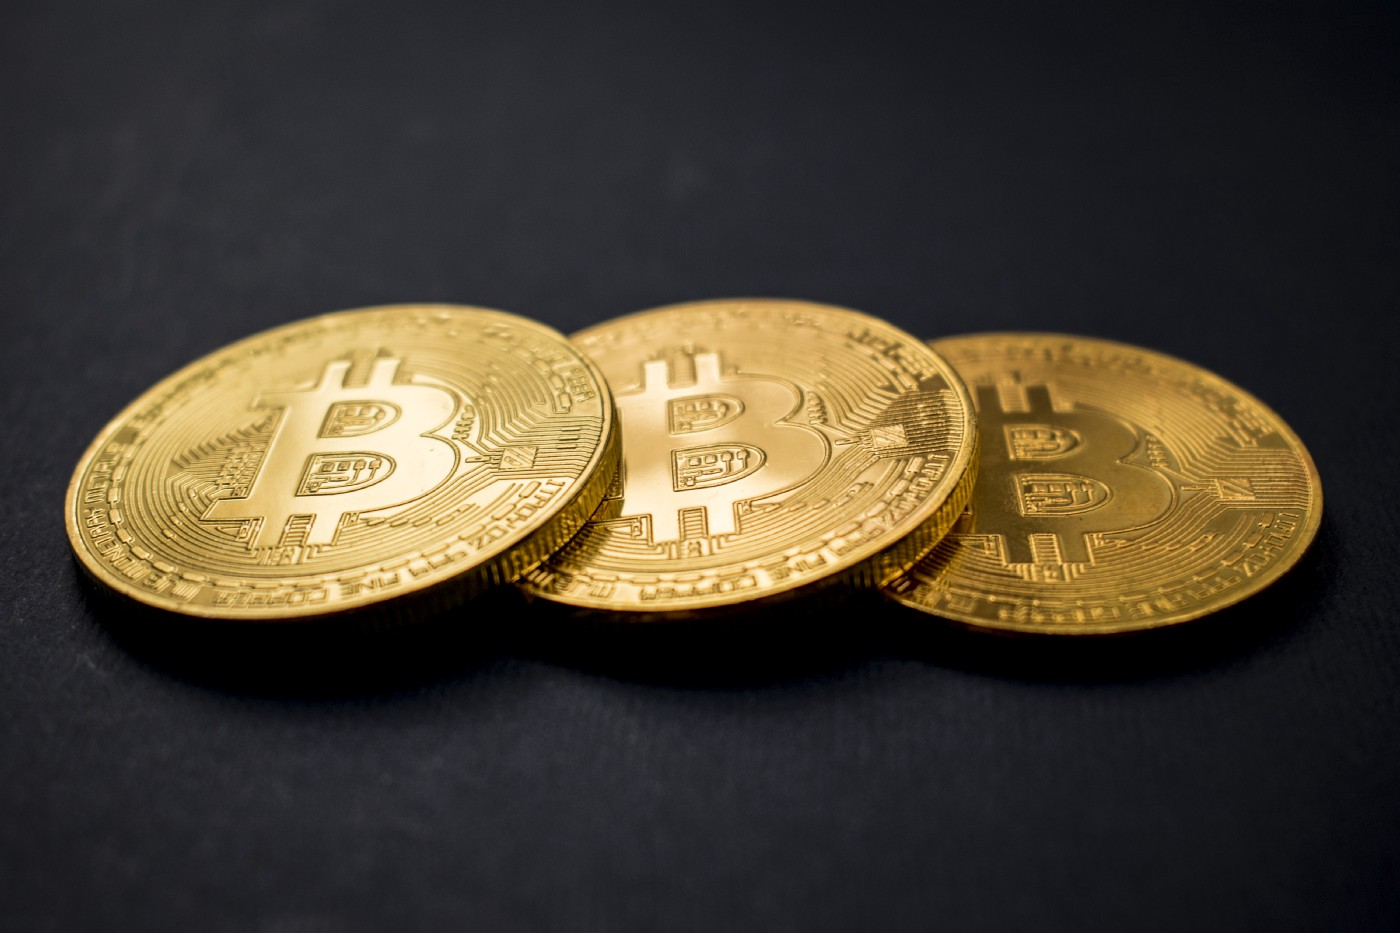 A title image with three golden Bitcoins in front of a dark background.